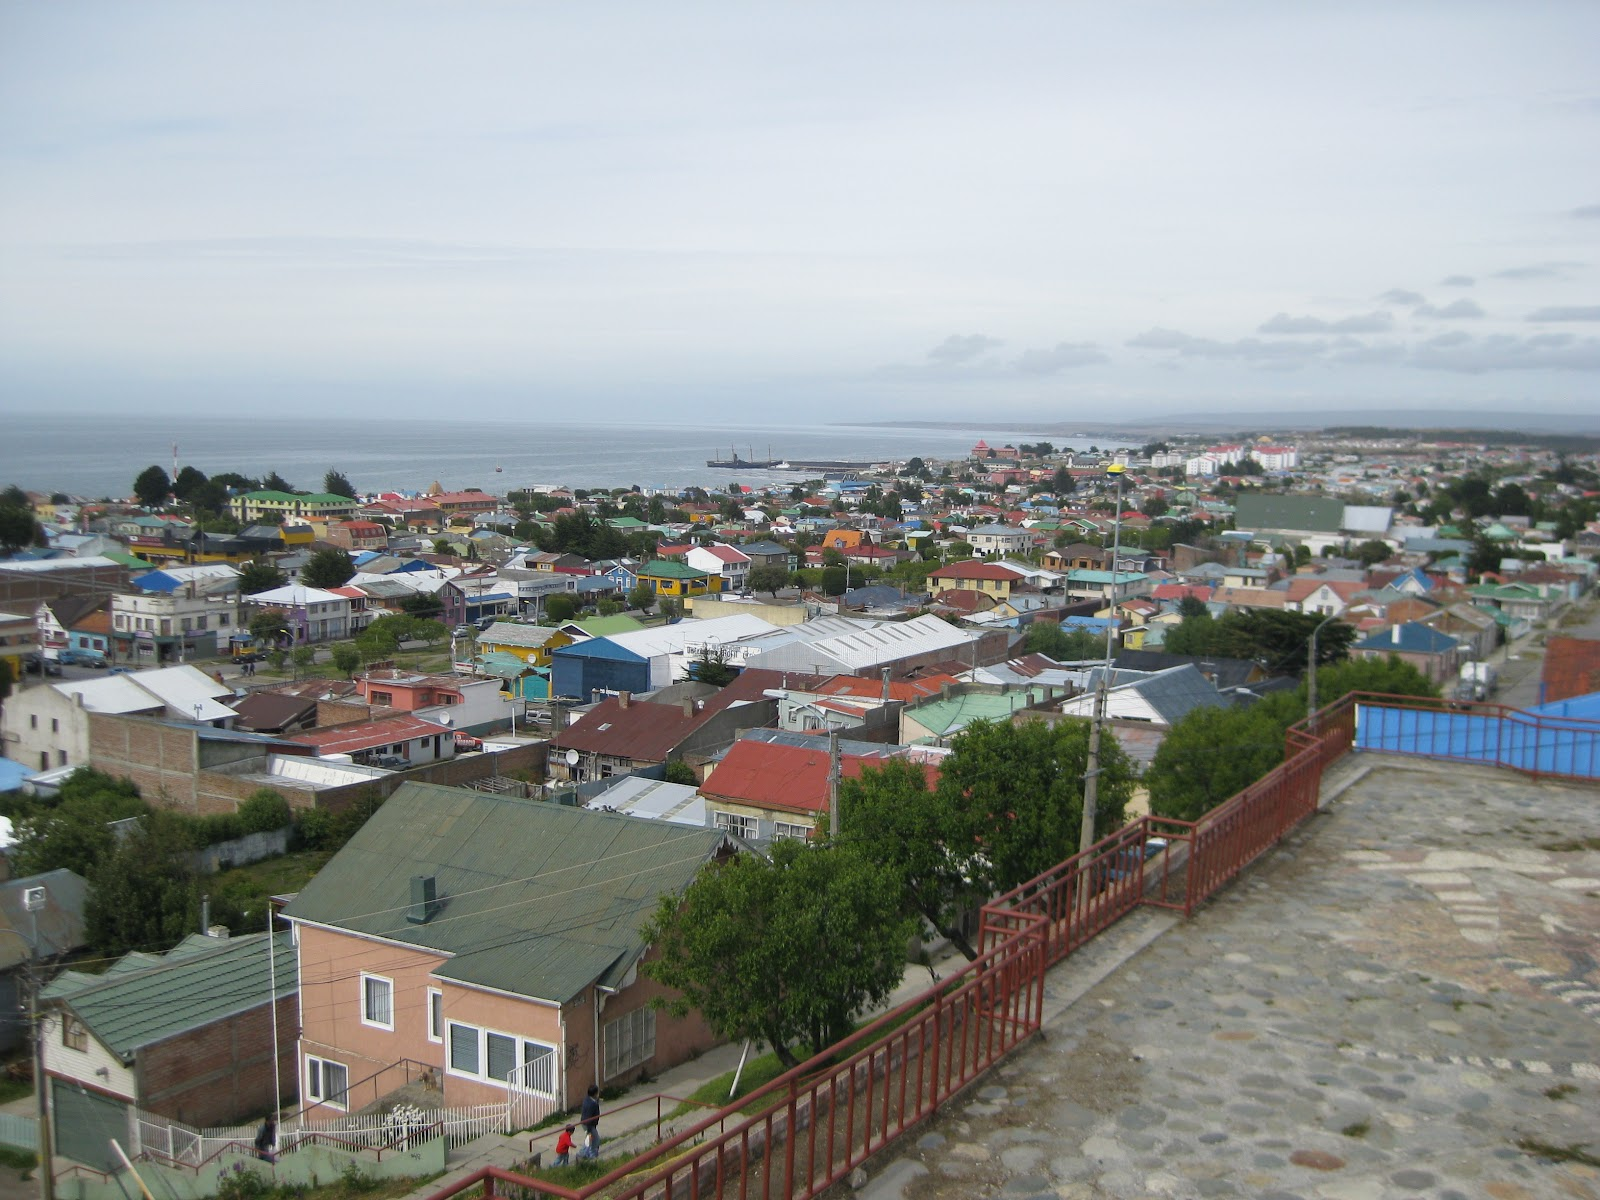 View over the Straits of Magellan